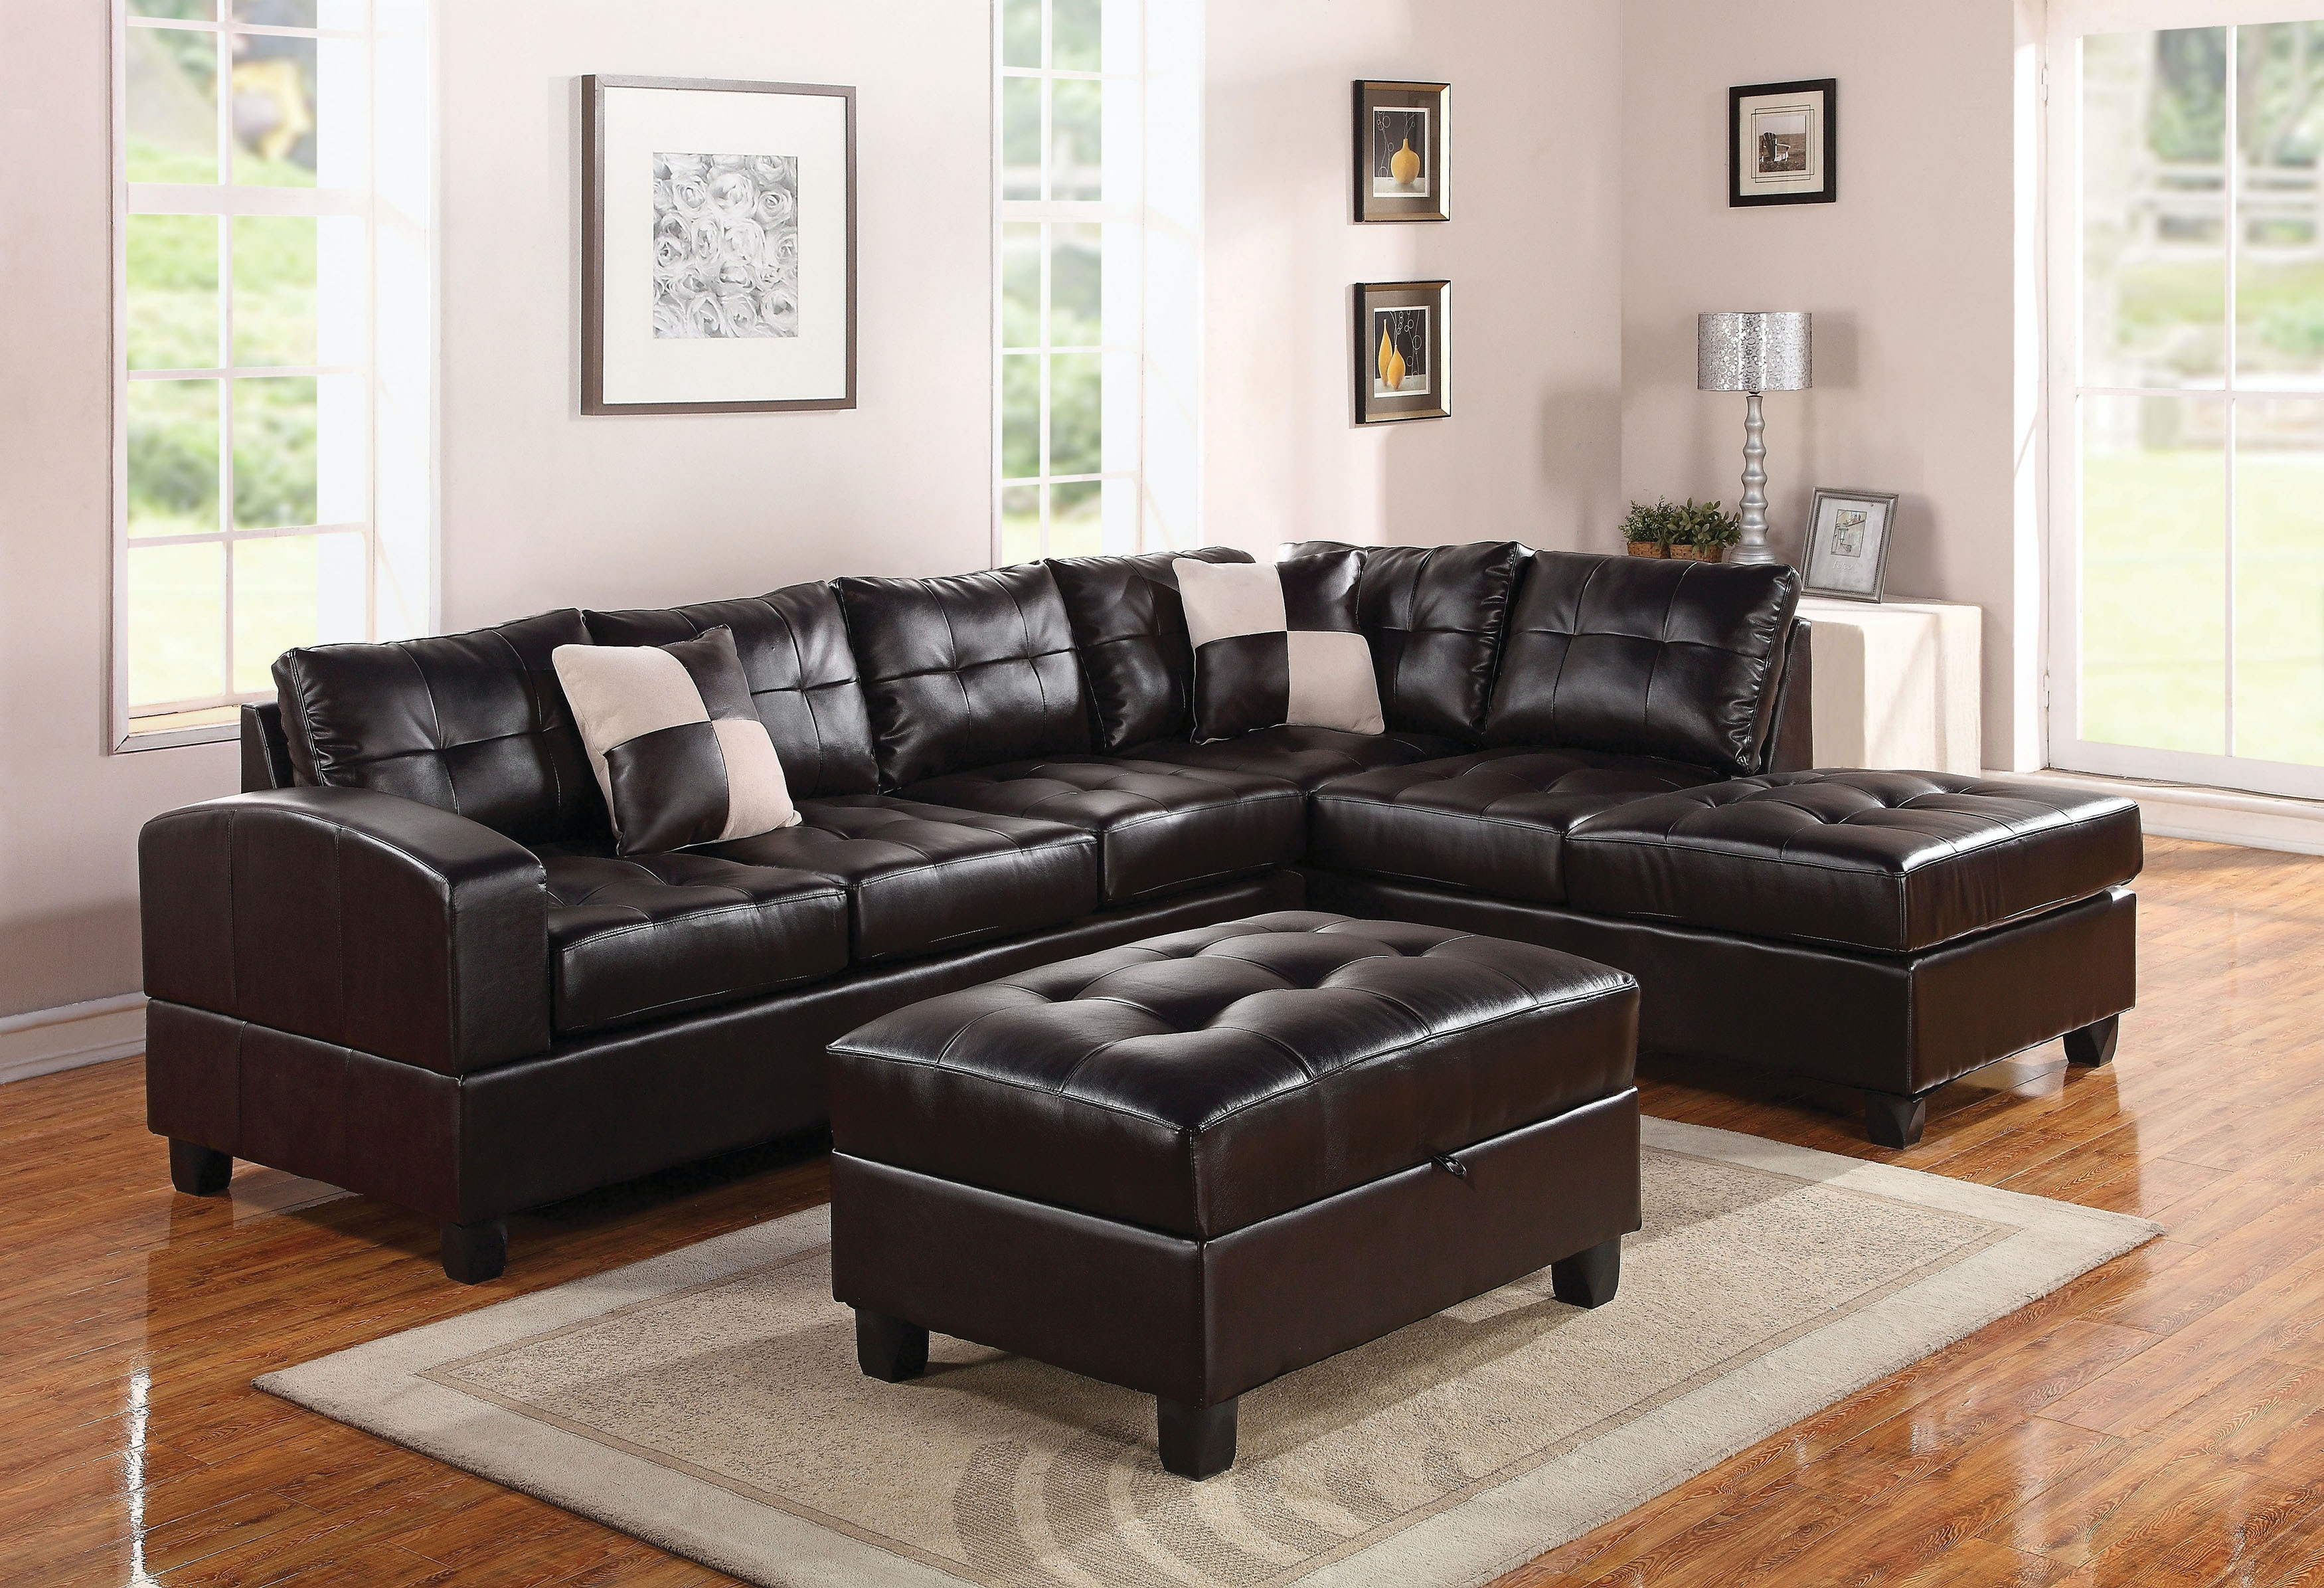 brooklyn bonded leather lounger chair and ottoman hanging clear acme furniture living room kiva sectional sofa with 2 pillows